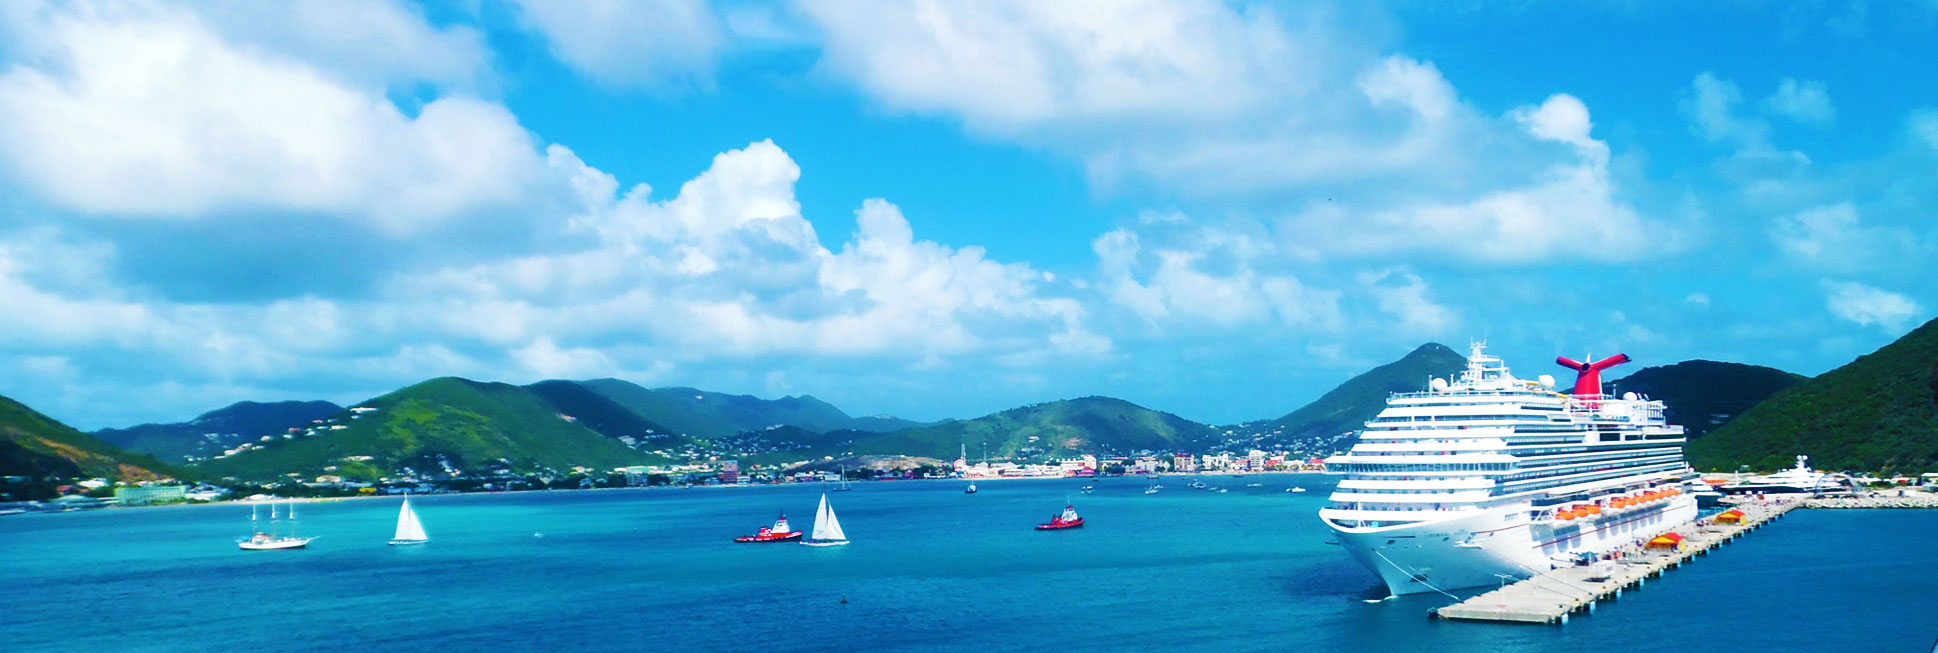 Touring St Maarten/St Martin, Dutch and French in one day